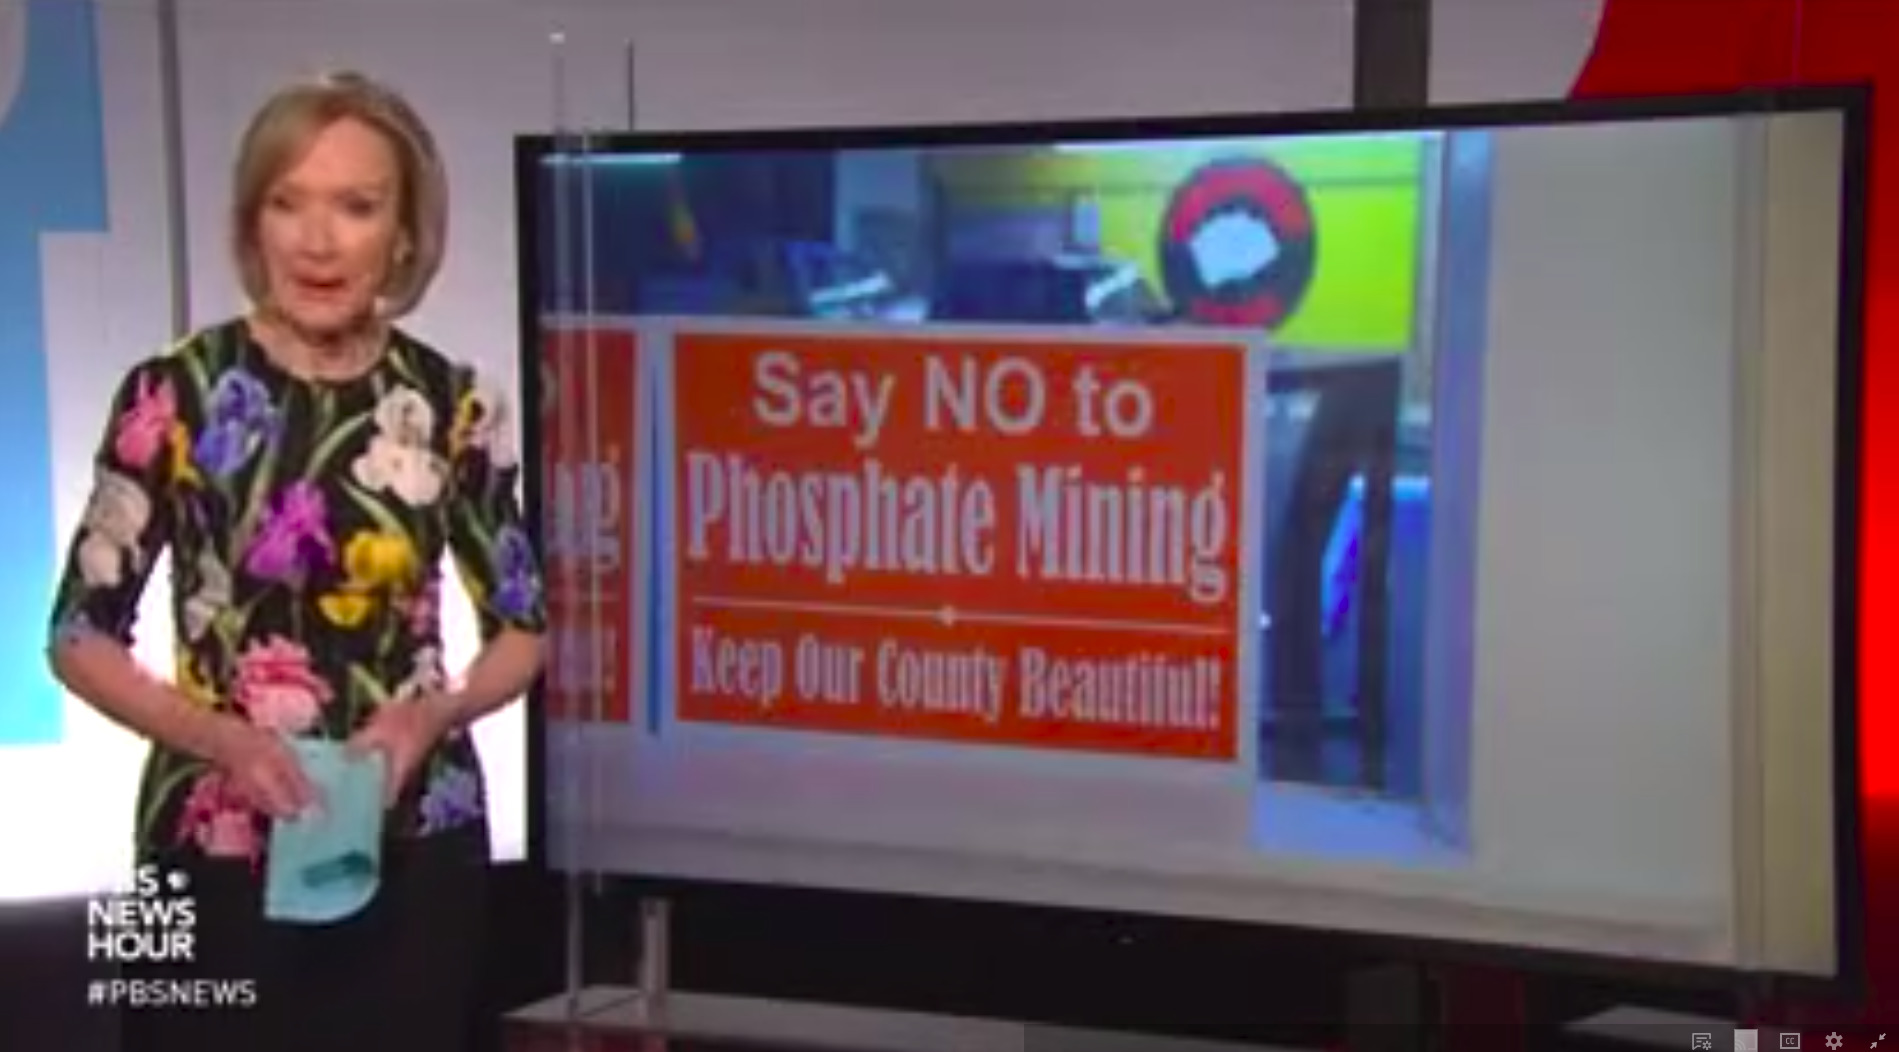 1899x1052 No-phosphate-mining, Union County, in PBS airs part of Alan Toth's Phosphate Mining Movie, by PBS, for WWALS.net, 31 October 2018